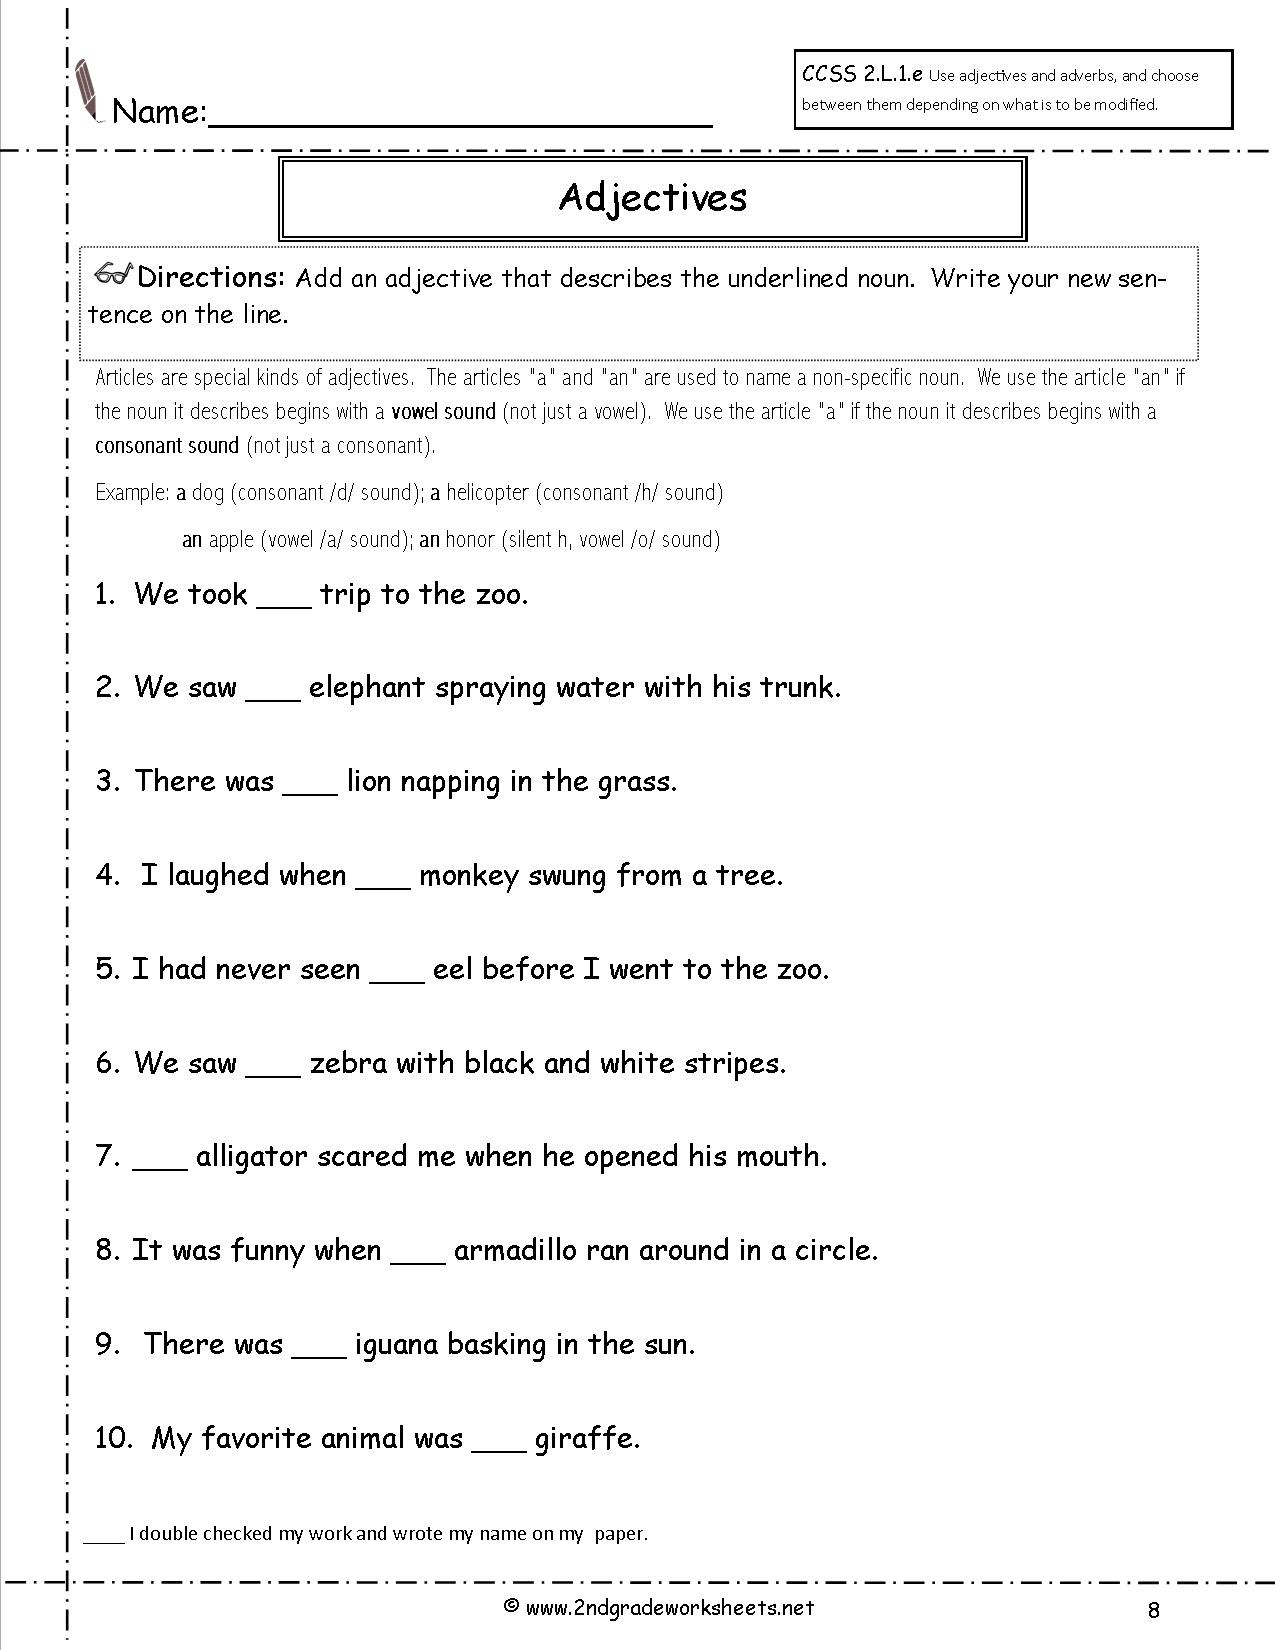 Free Language/grammar Worksheets And Printouts - Free Printable Esl Grammar Worksheets